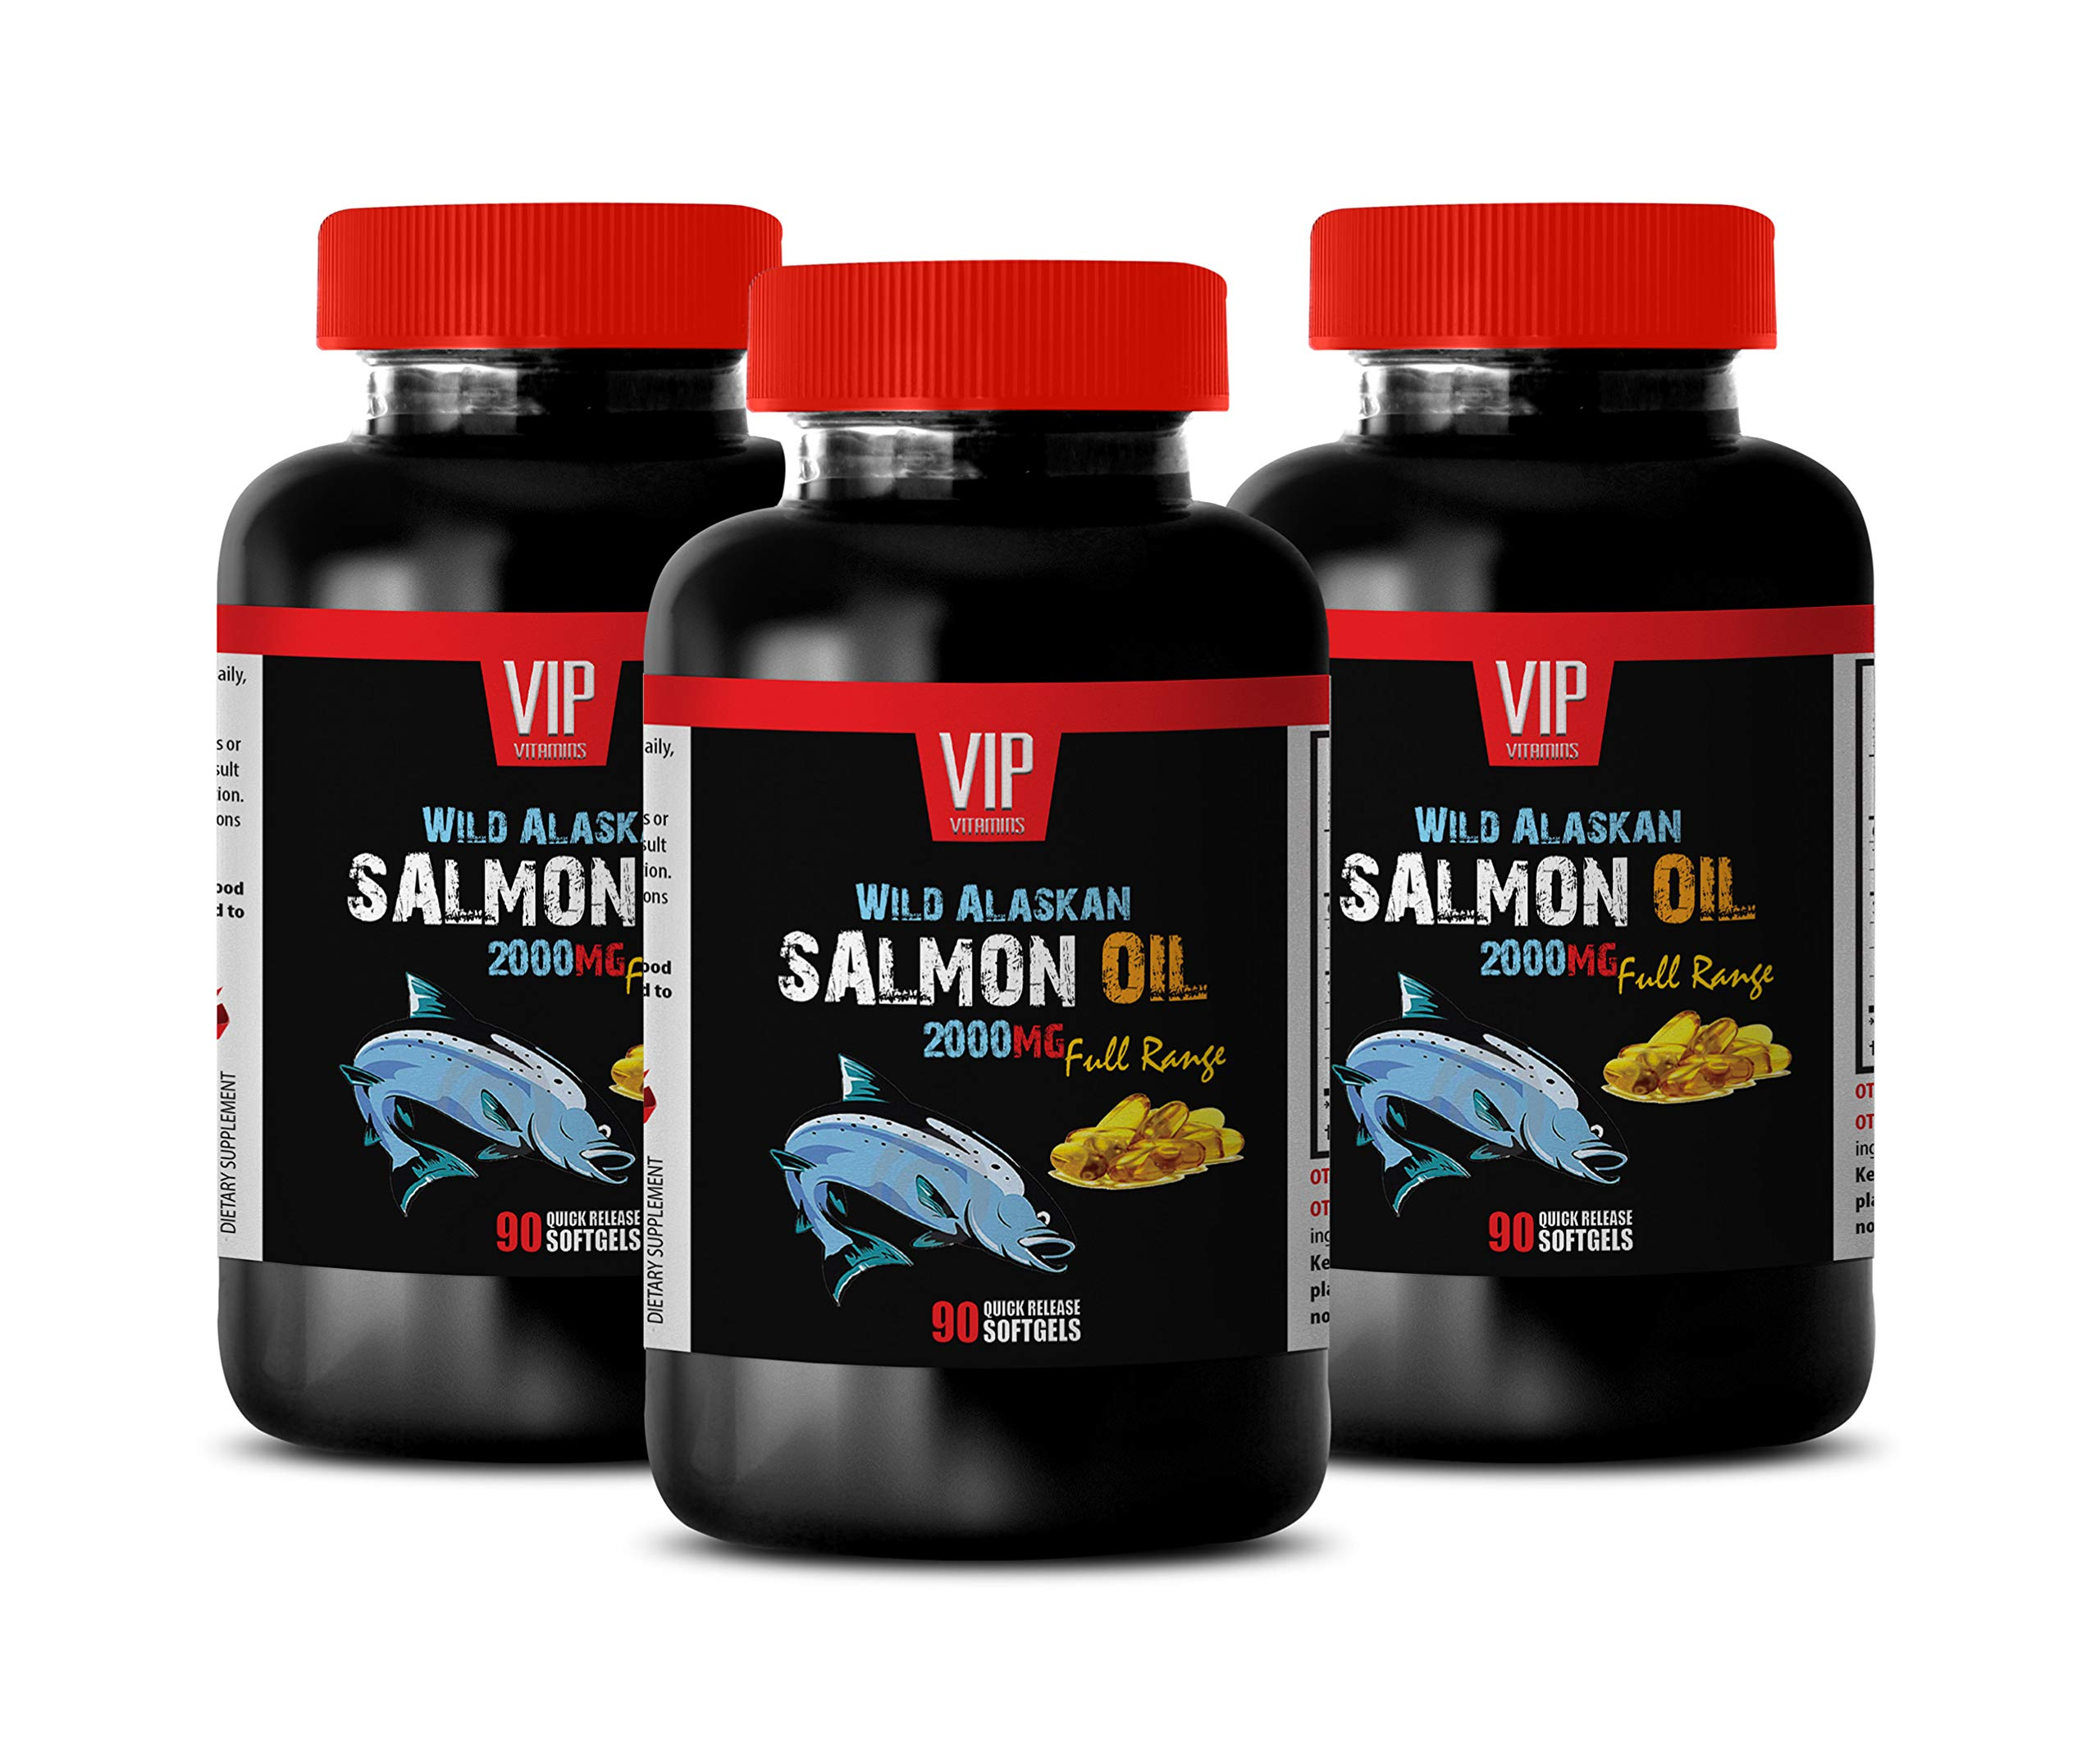 Heart Health Supplements for Women - Wild Alaskan Salmon Oil 2000 - Omega 3 dha epa - 3 Bottles 270 Softgels